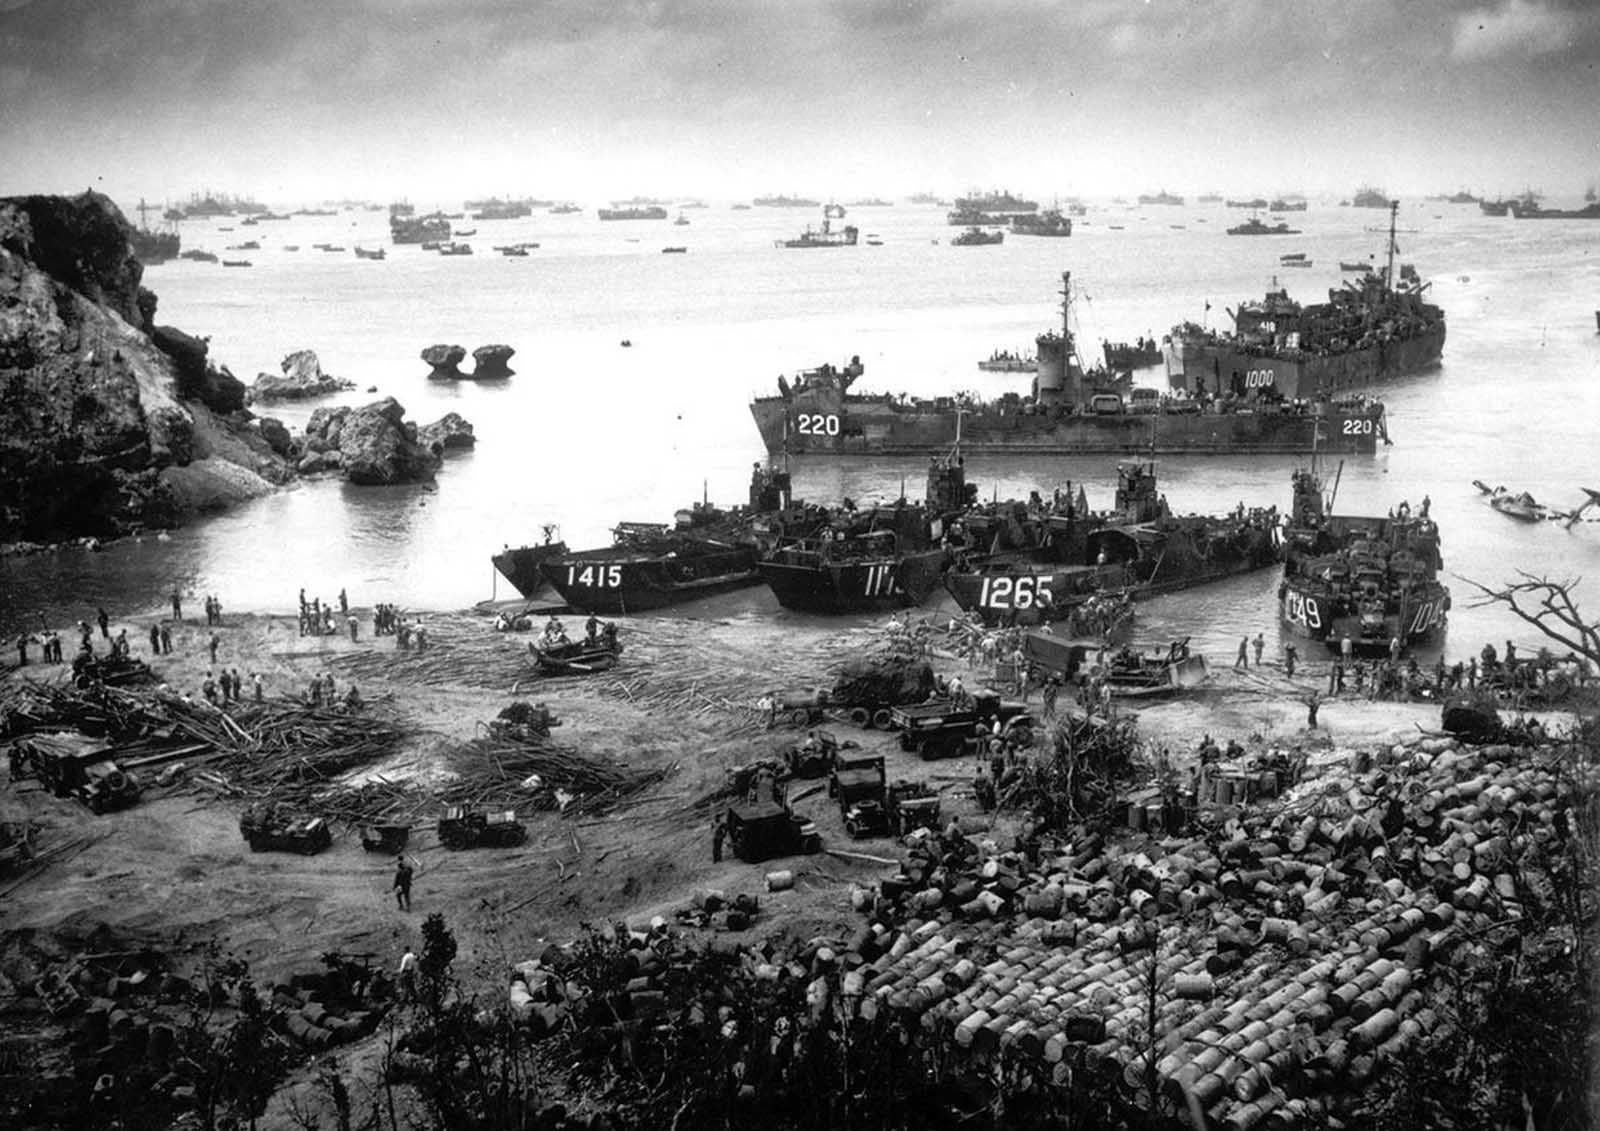 U.S. invasion forces establish a beachhead on Okinawa island, about 350 miles from the Japanese mainland, on April 13. 1945. Pouring out war supplies and military equipment, the landing crafts fill the sea to the horizon, in the distance, battleships of the U.S. fleet.